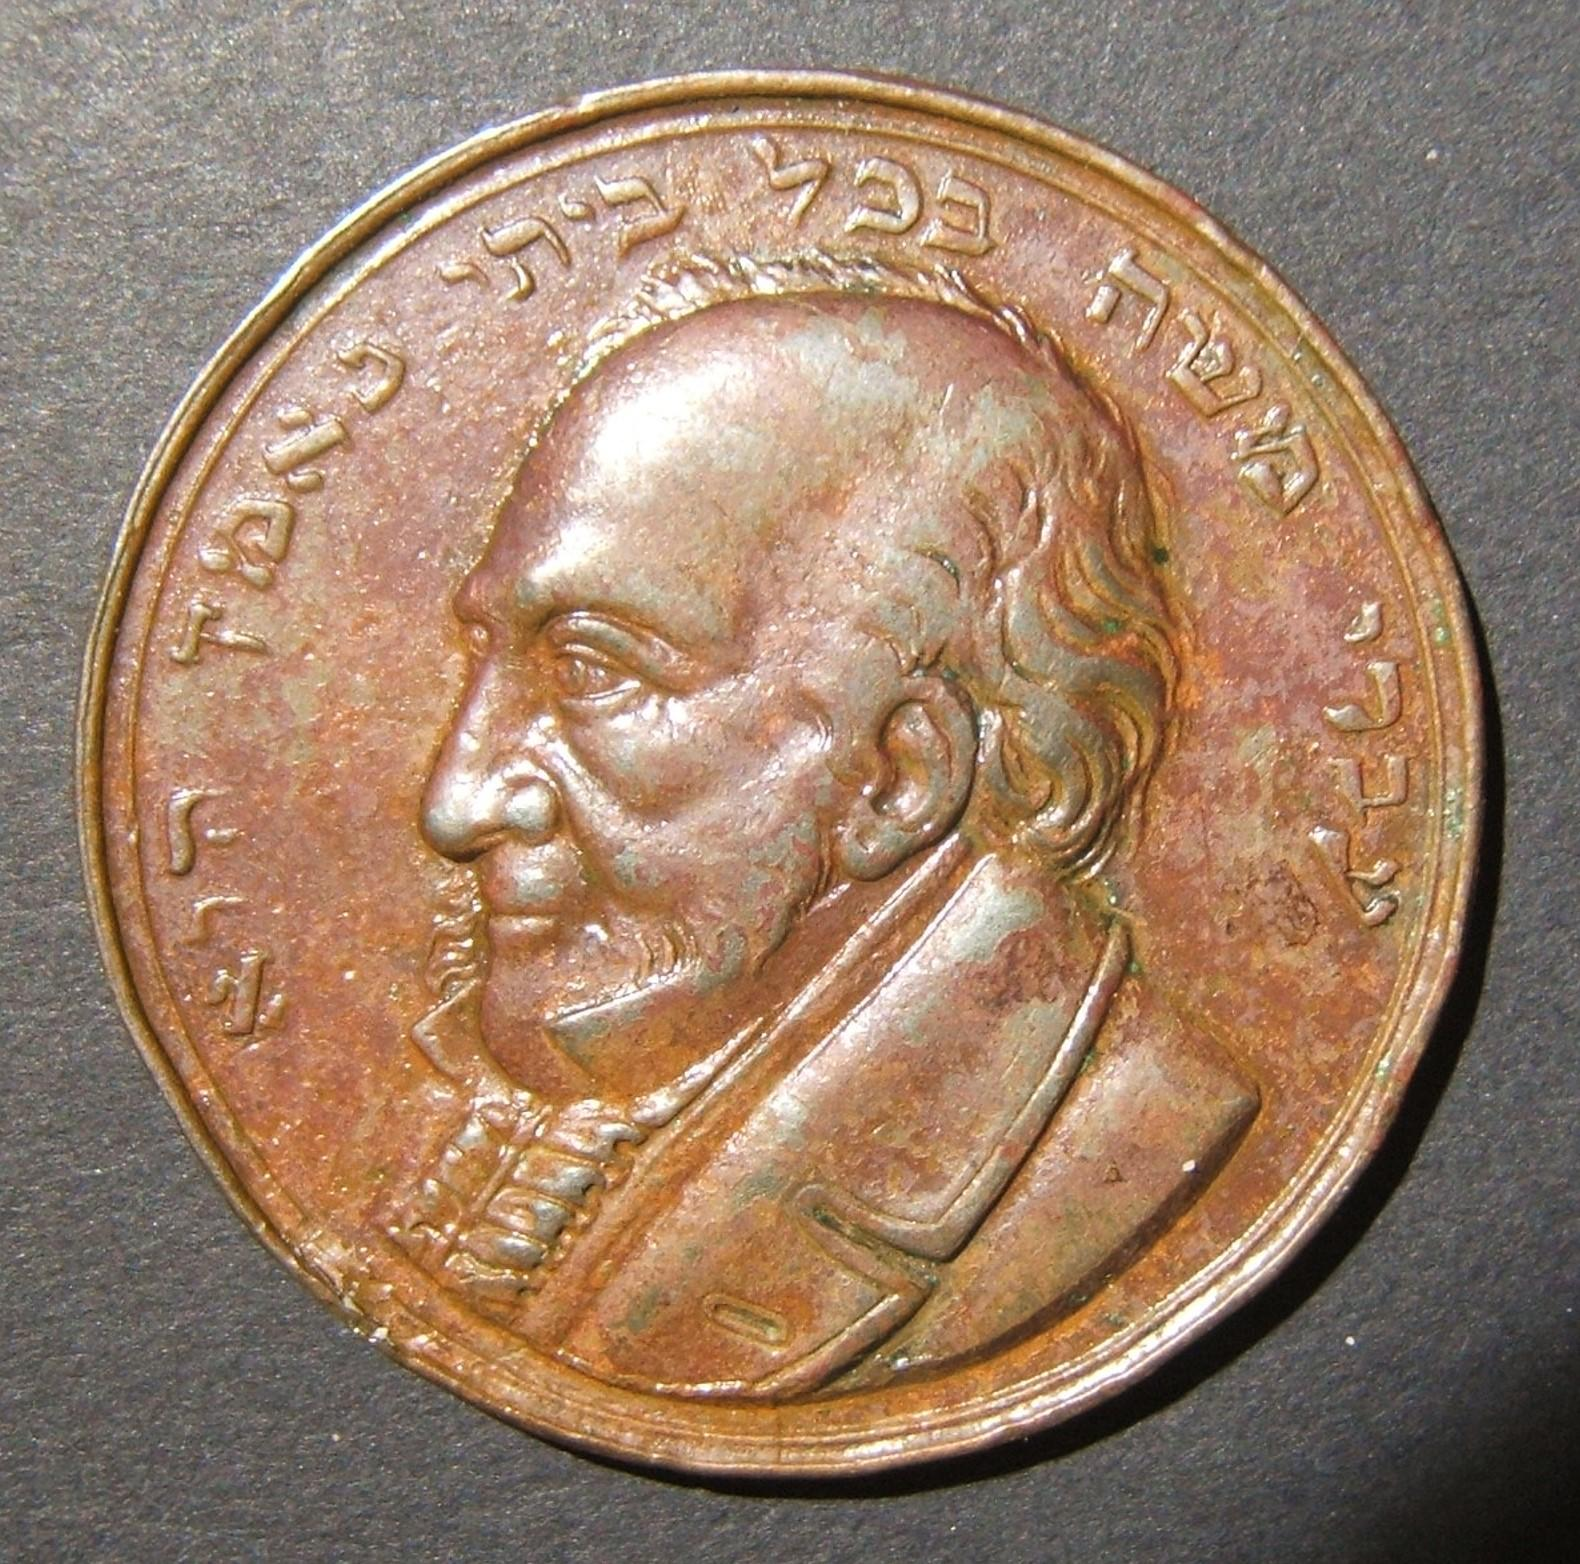 Italy: Sir Moses Montefiore centennary bronze struck medal, 1884; unmarked; 4.25cm, 27.1g. Obv.: relief of Montefiore left w/Heb. leg.